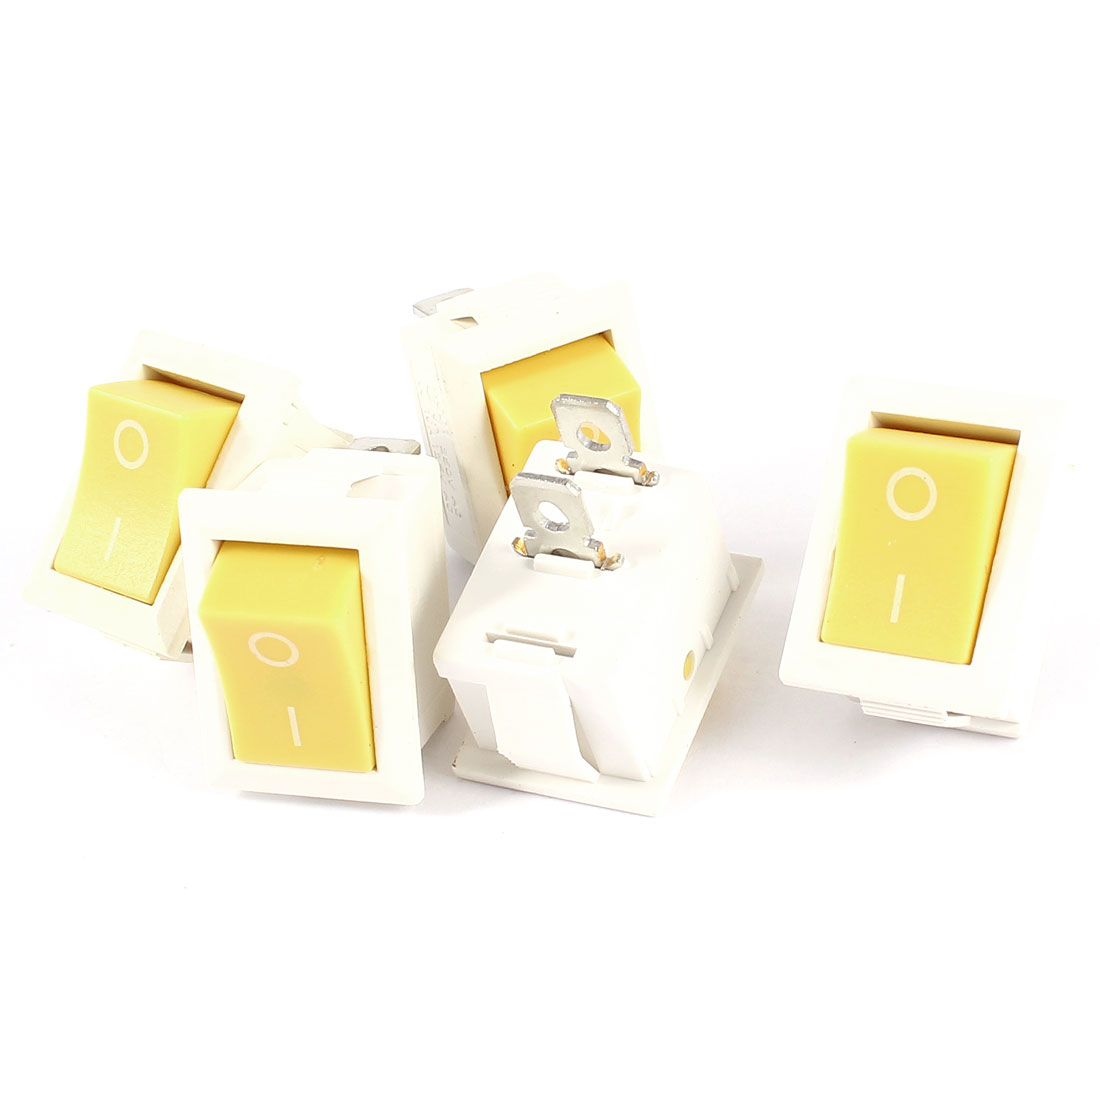 5 Pcs KCD1 AC 250V 6A 125V 10A 2Pin SPST Power ON/OFF Panel Mount Rocker Switch Yellow White